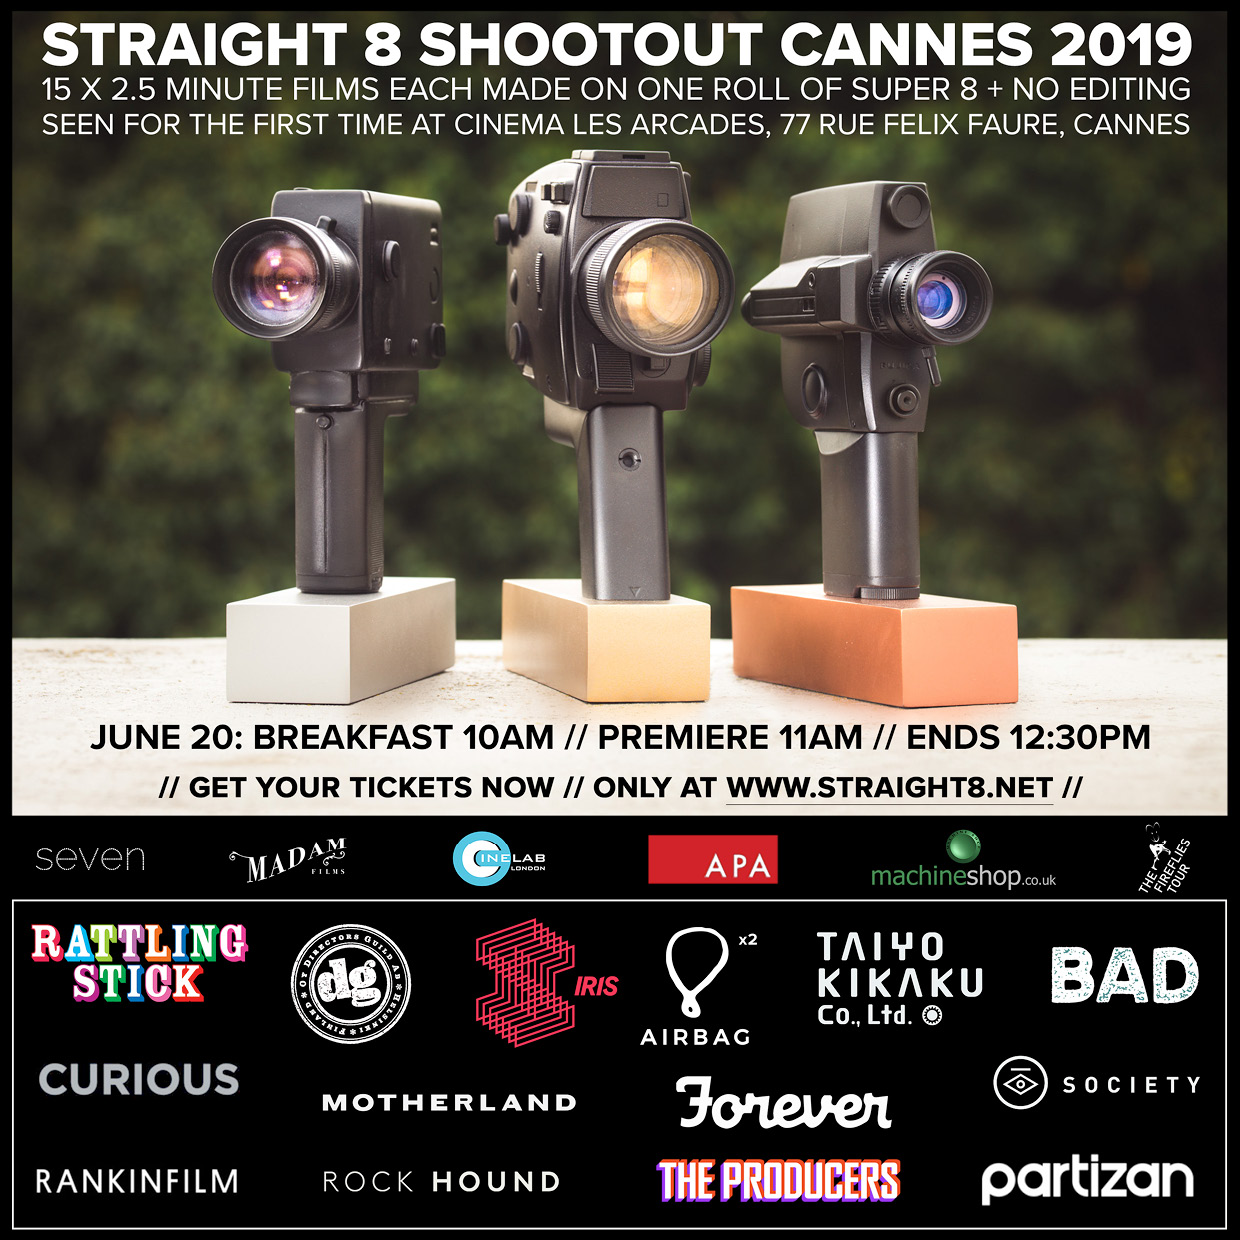 straight 8 shootout cannes 2019 screening flyer large with bleed.jpg